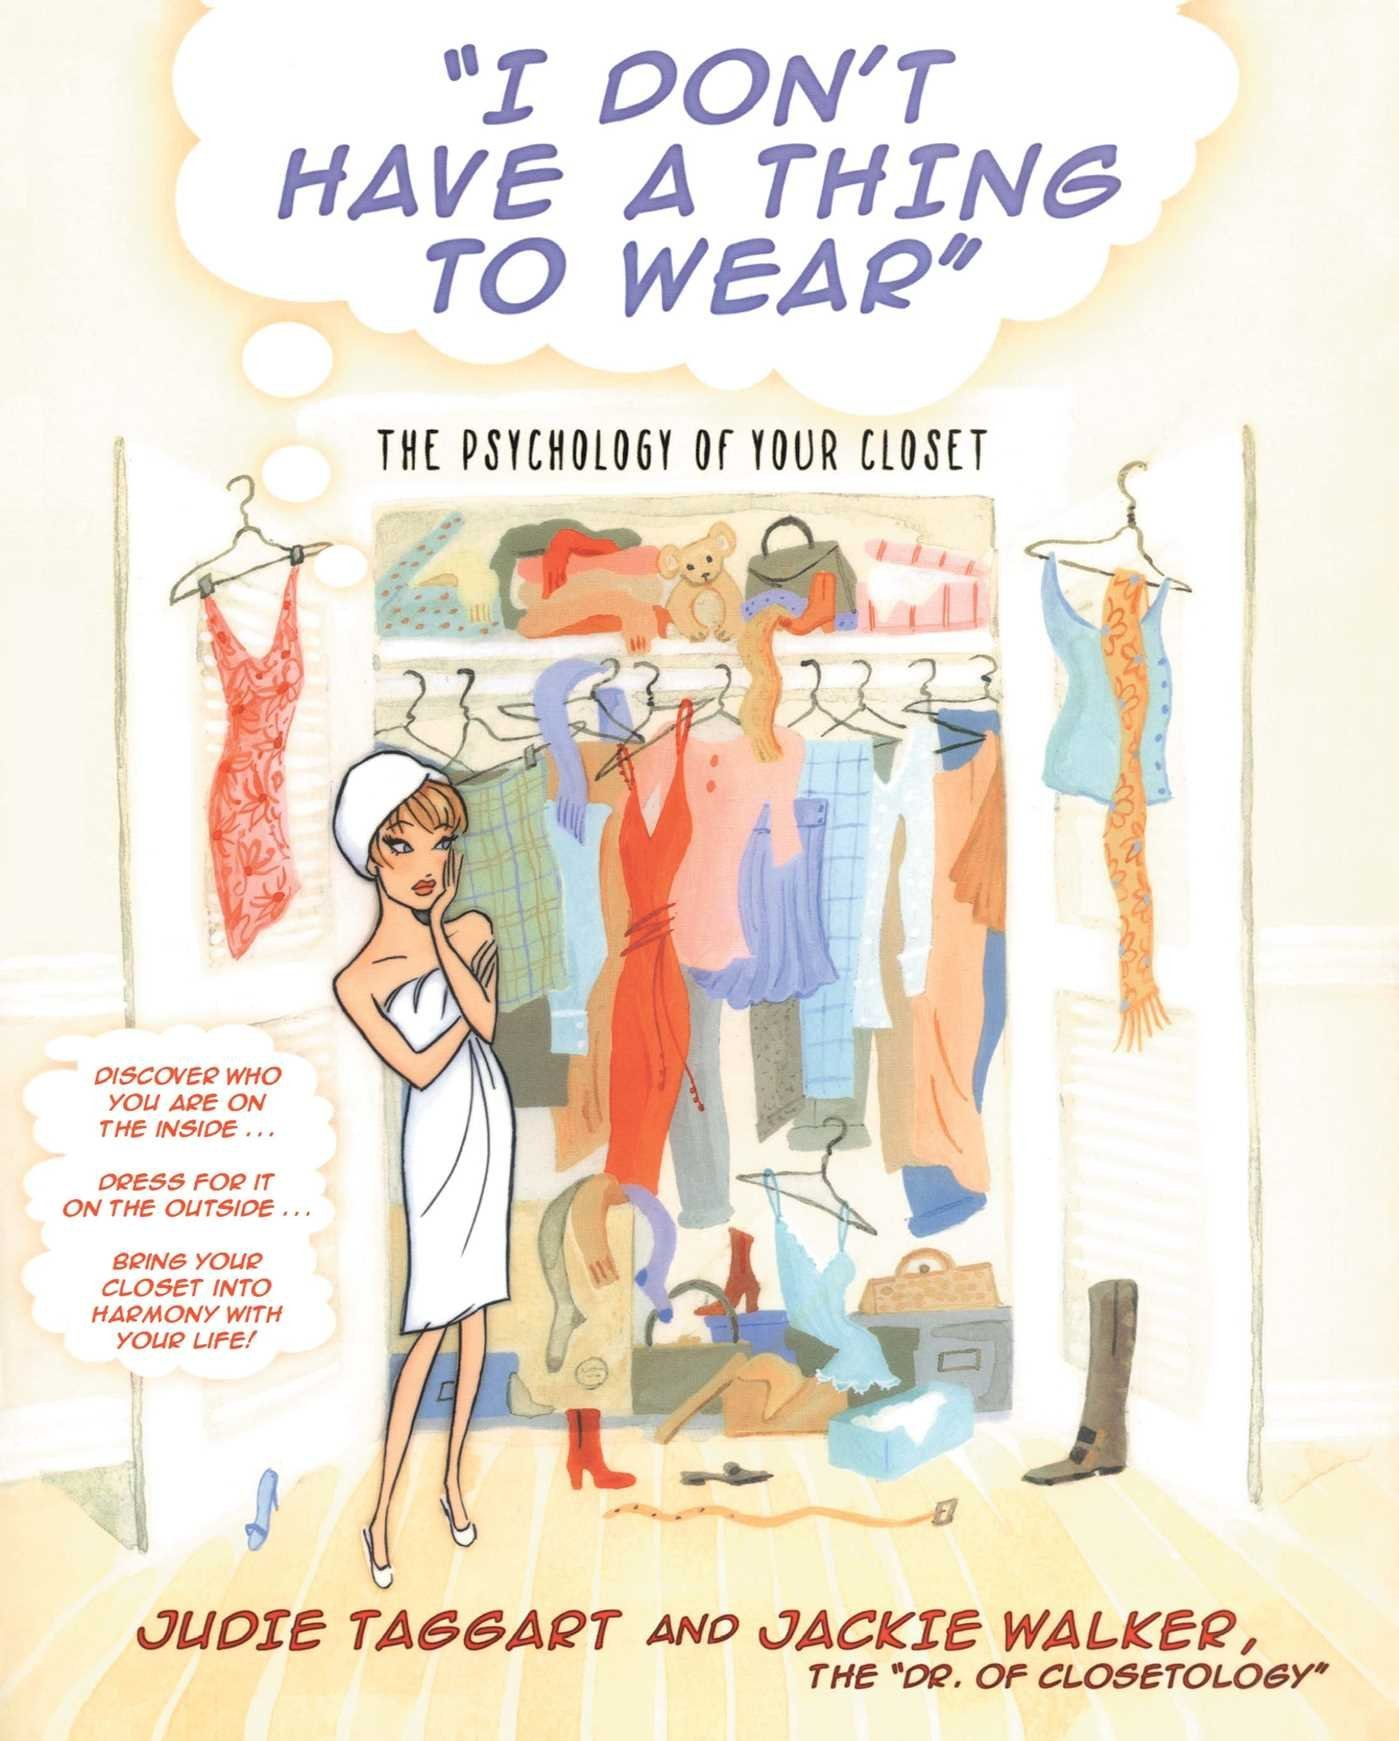 Beautiful I Donu0027t Have A Thing To Wear: The Psychology Of Your Closet: Judie Taggart,  Jackie Walker: 9780743466448: Amazon.com: Books